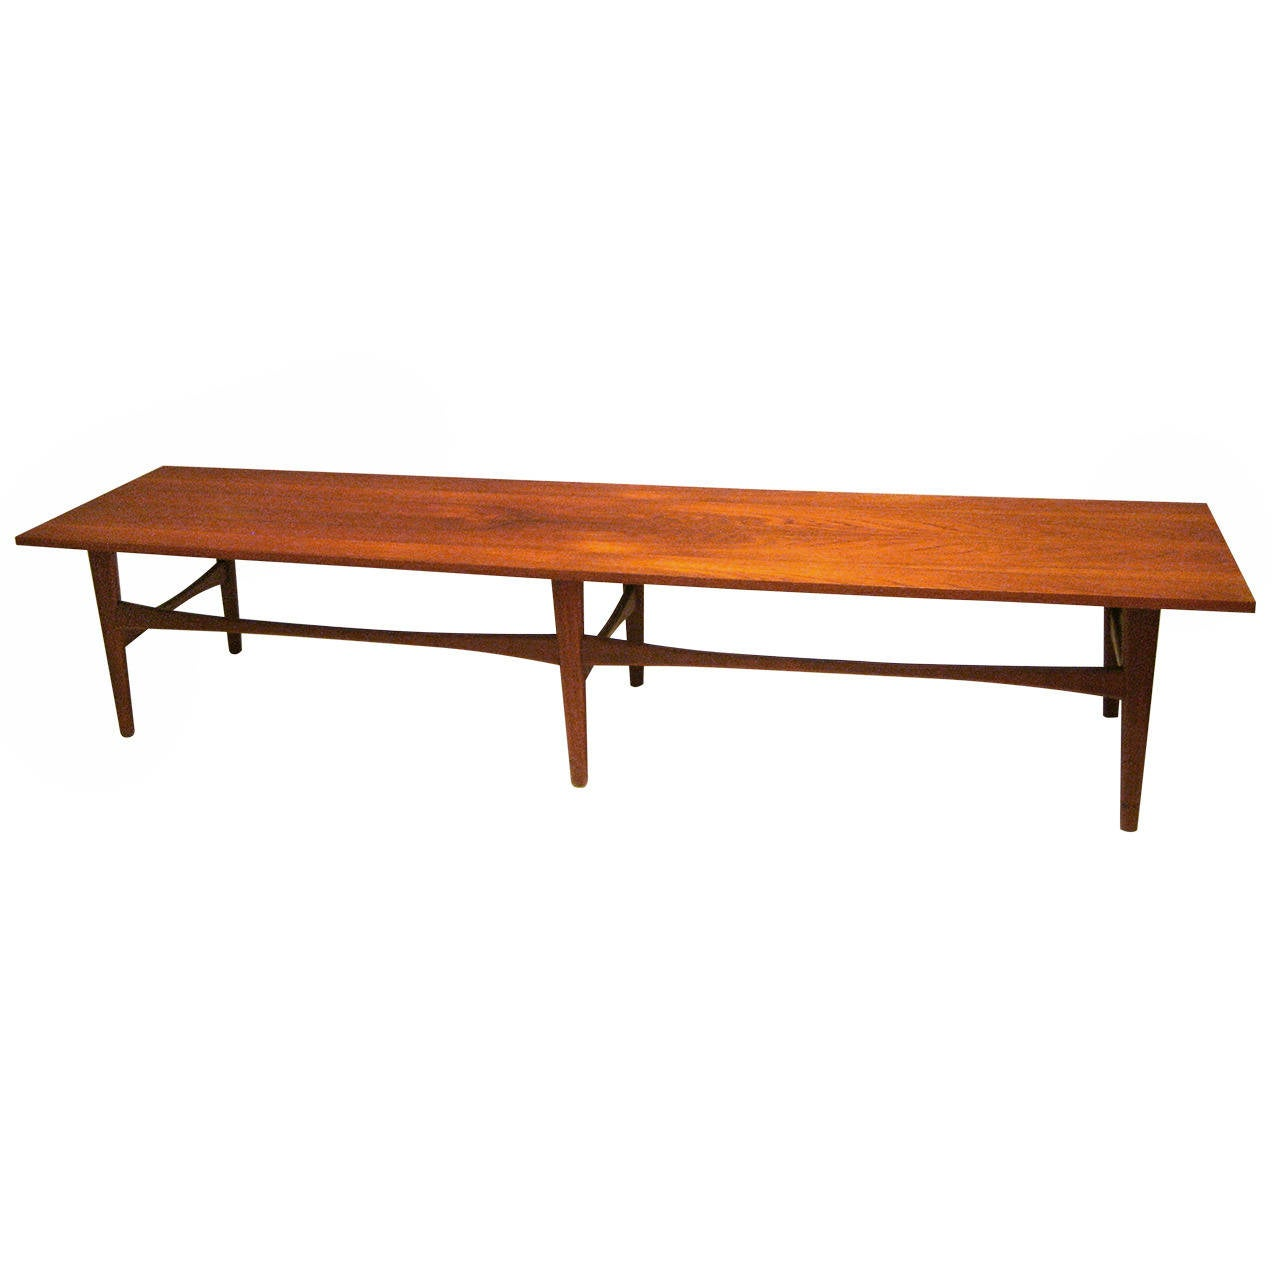 Danish modern long coffee table or bench in teak at 1stdibs Modern teak coffee table